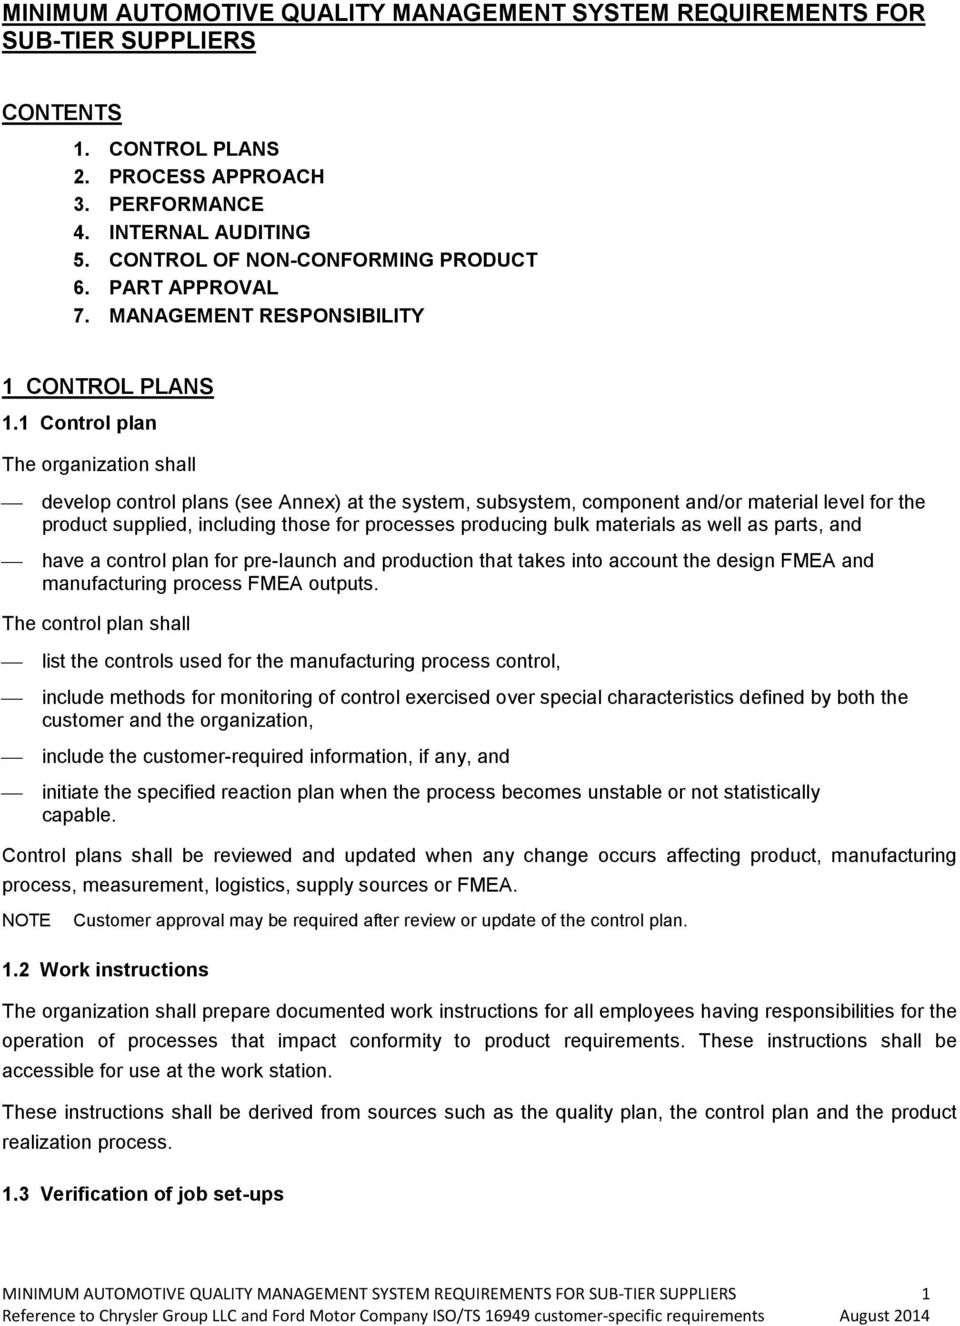 1 Control plan The organization shall develop control plans (see Annex) at the system, subsystem, component and/or material level for the product supplied, including those for processes producing